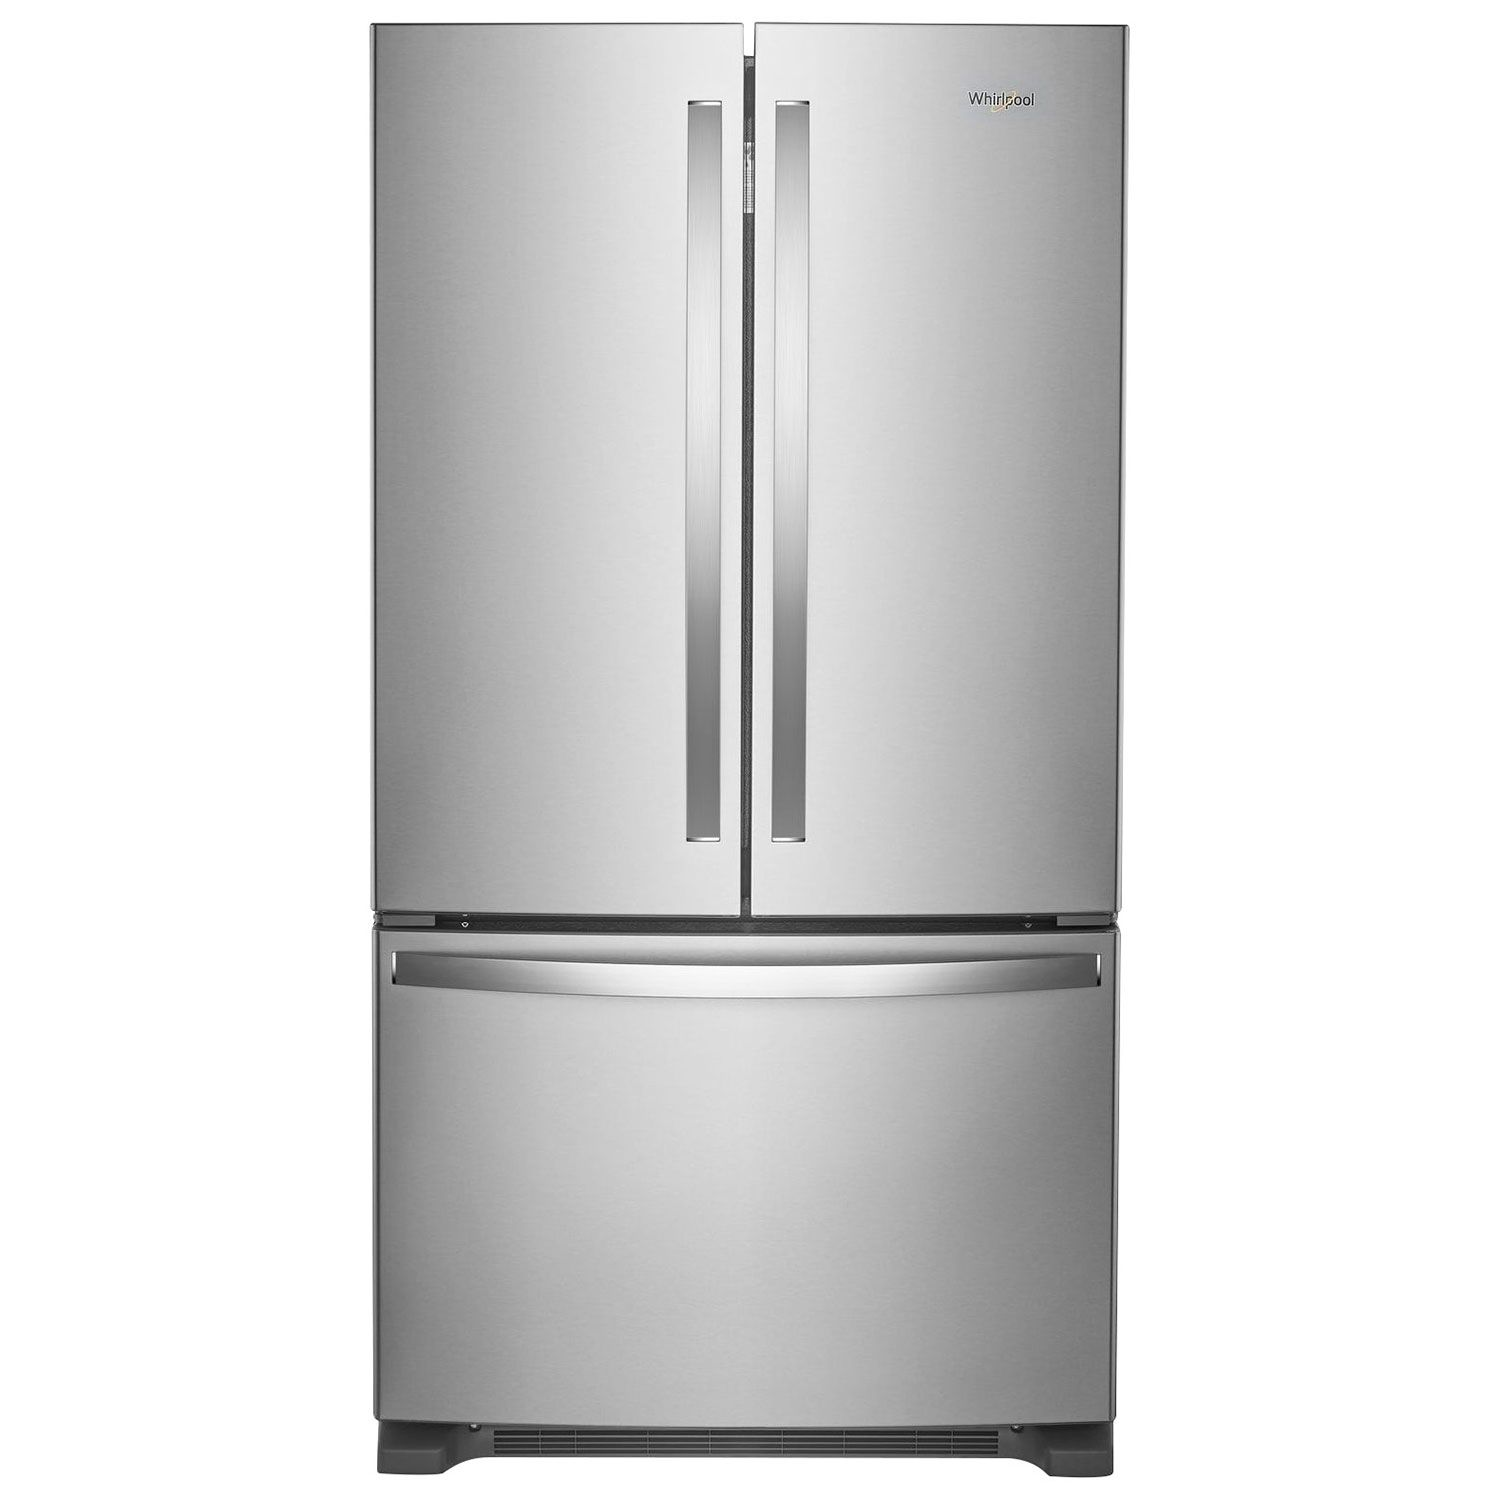 "Whirlpool 36"" Counter Depth French Door Refrigerator w Water"